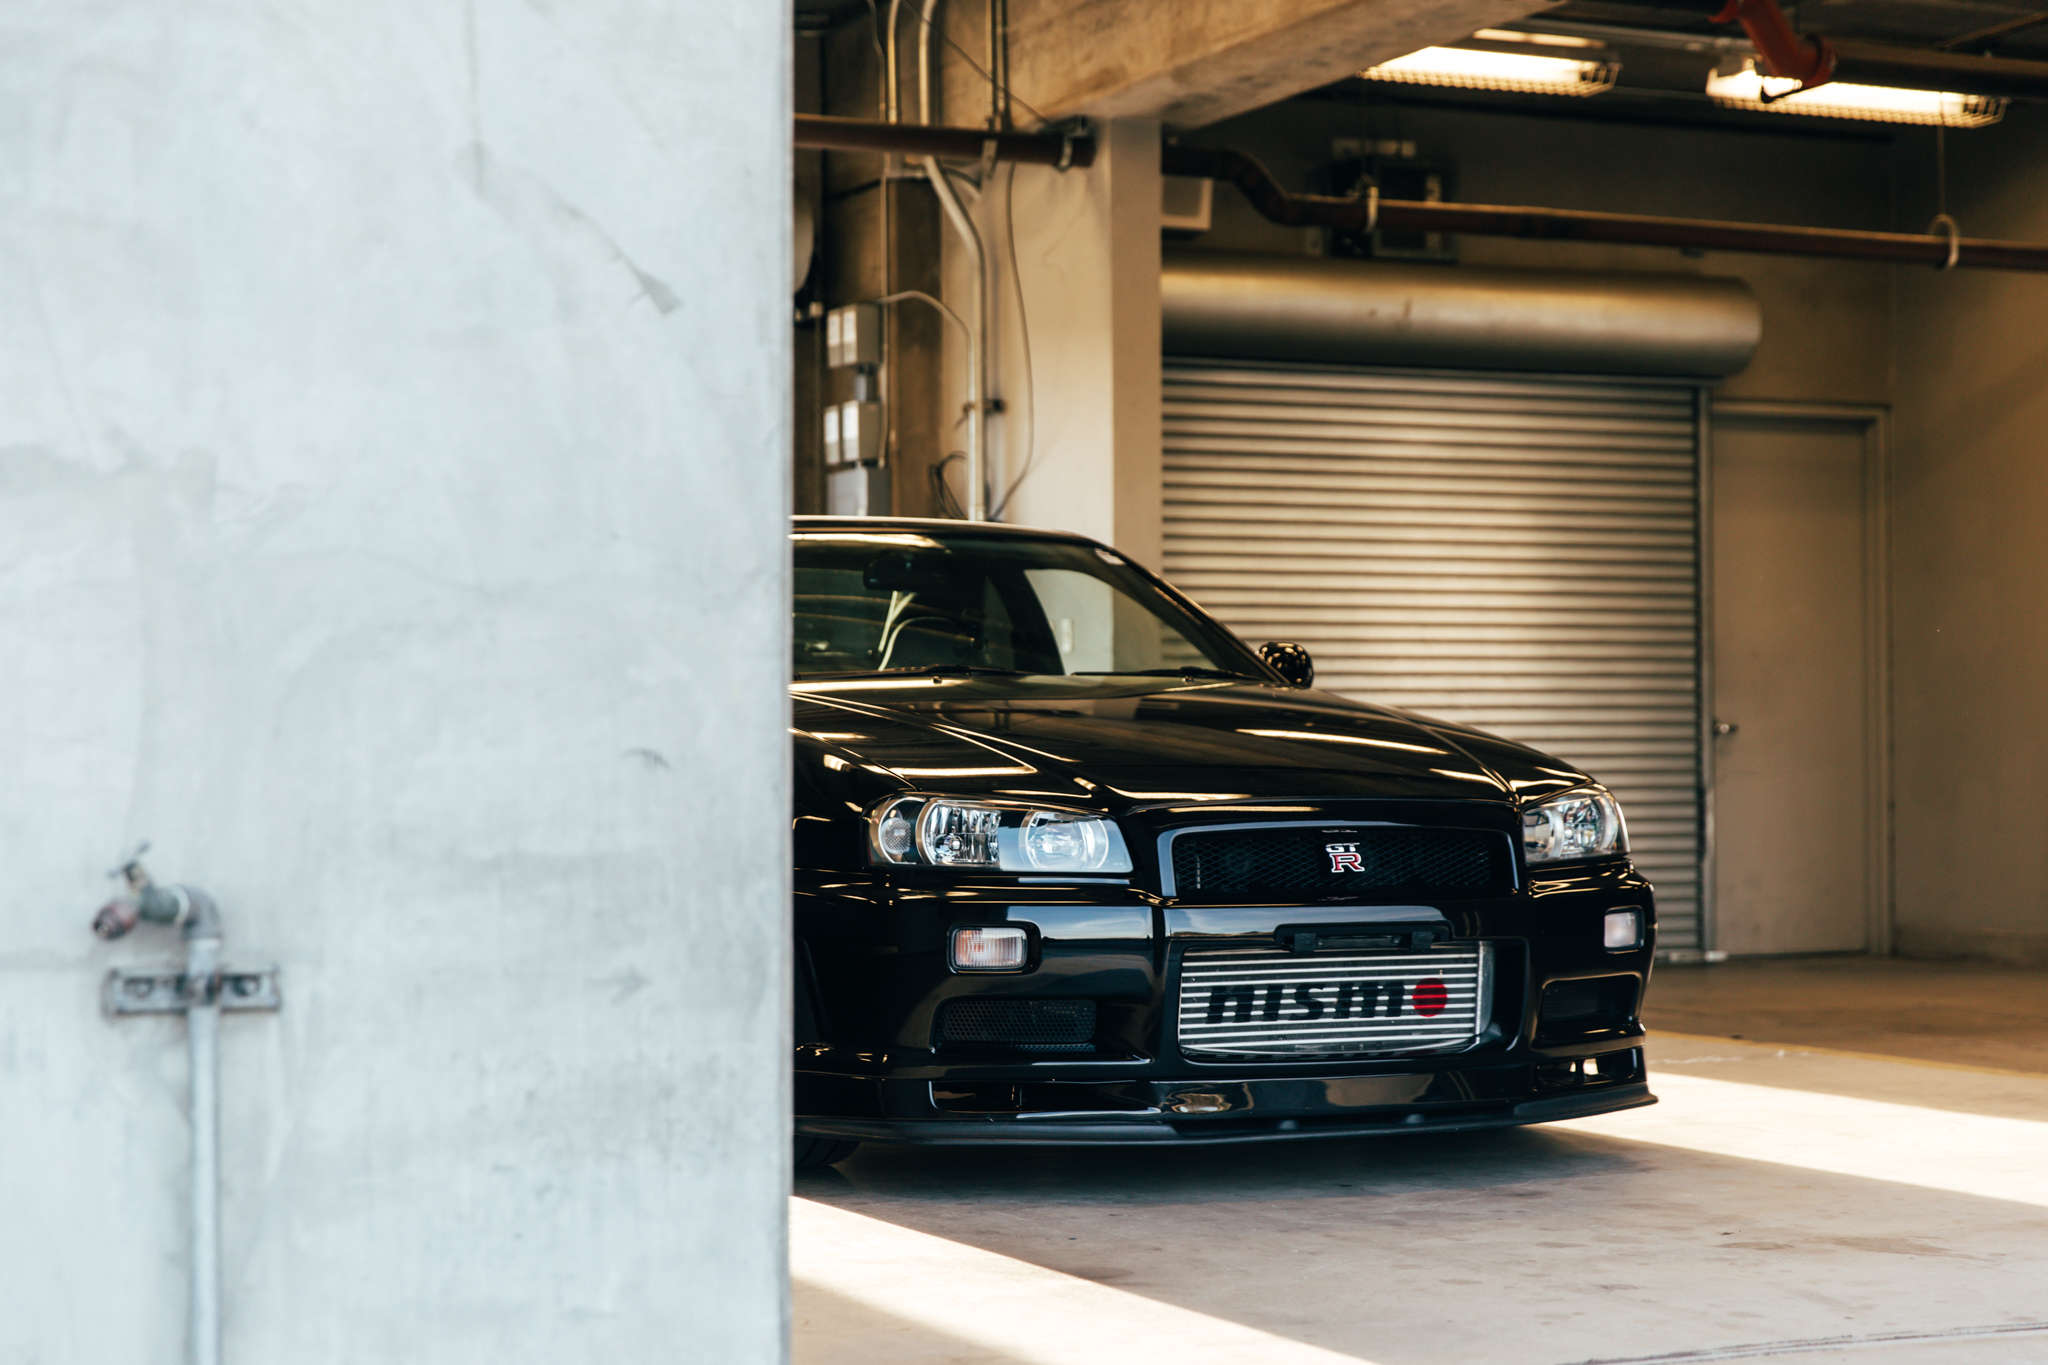 Stay_Driven_Rs_Day-16.jpg